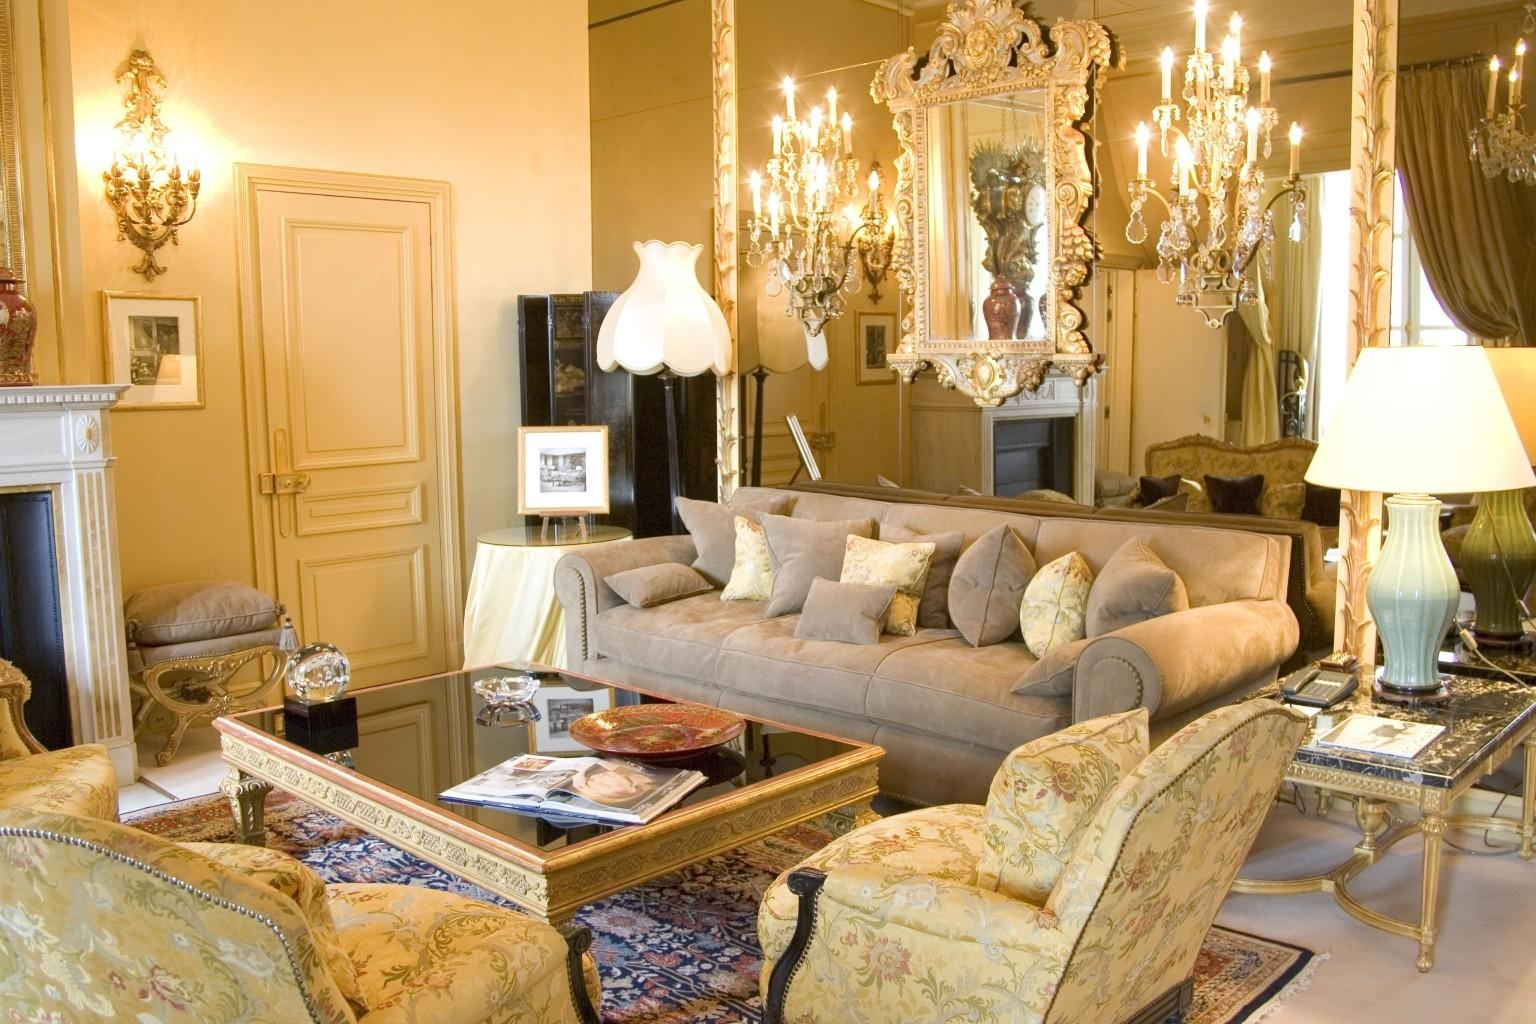 A Rare Look Inside Coco Chanel's Fabulous Parisian Apartment With With Regard To Coco Chanel Sofas (View 5 of 20)